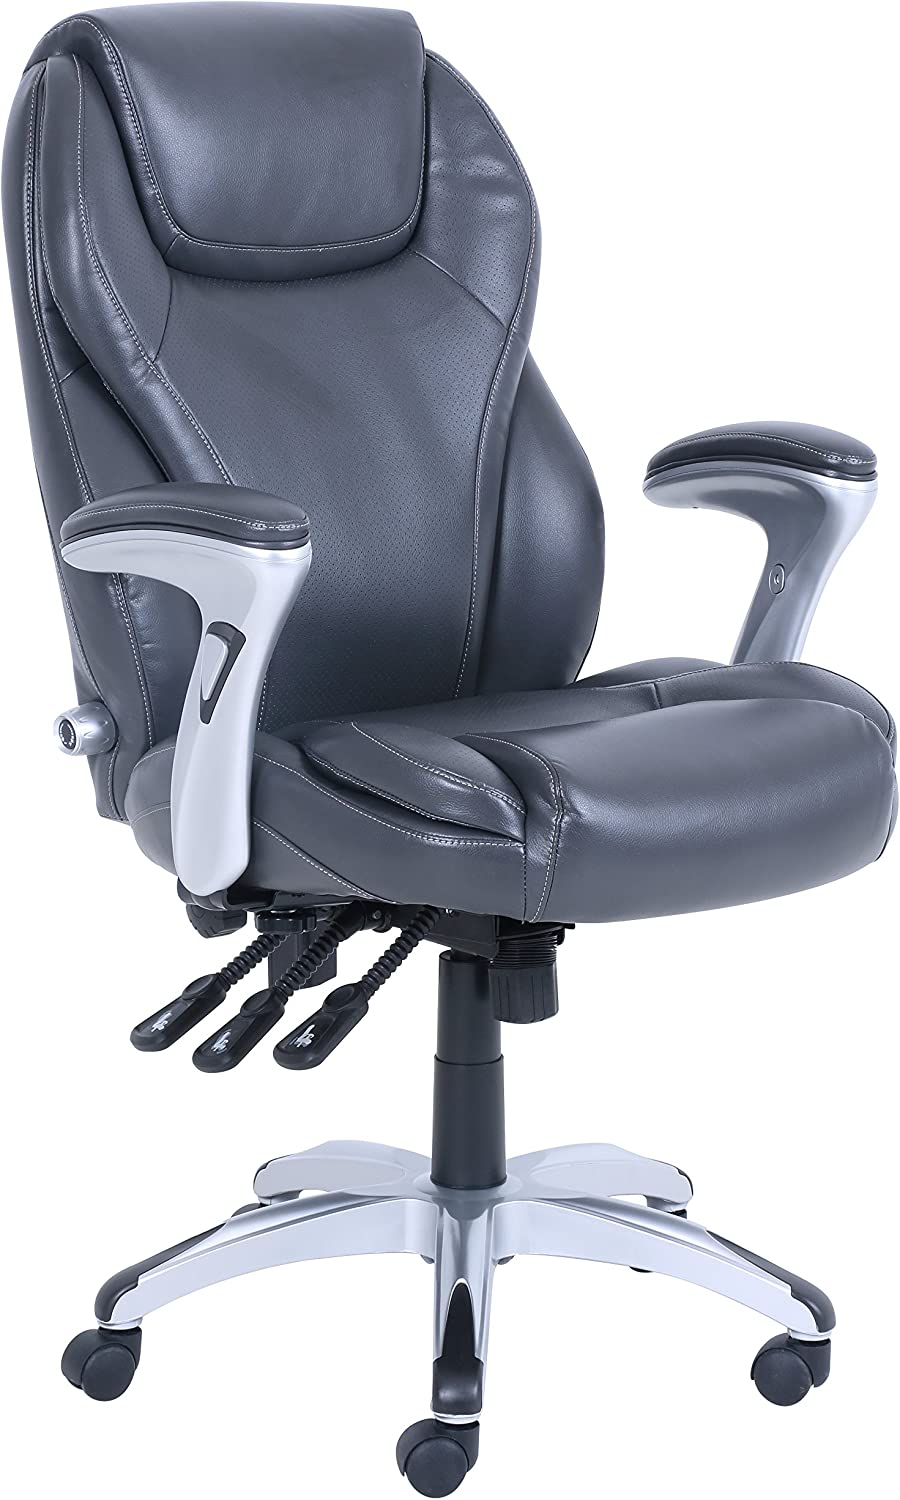 Serta Ergo Executive Office Chair, Gray